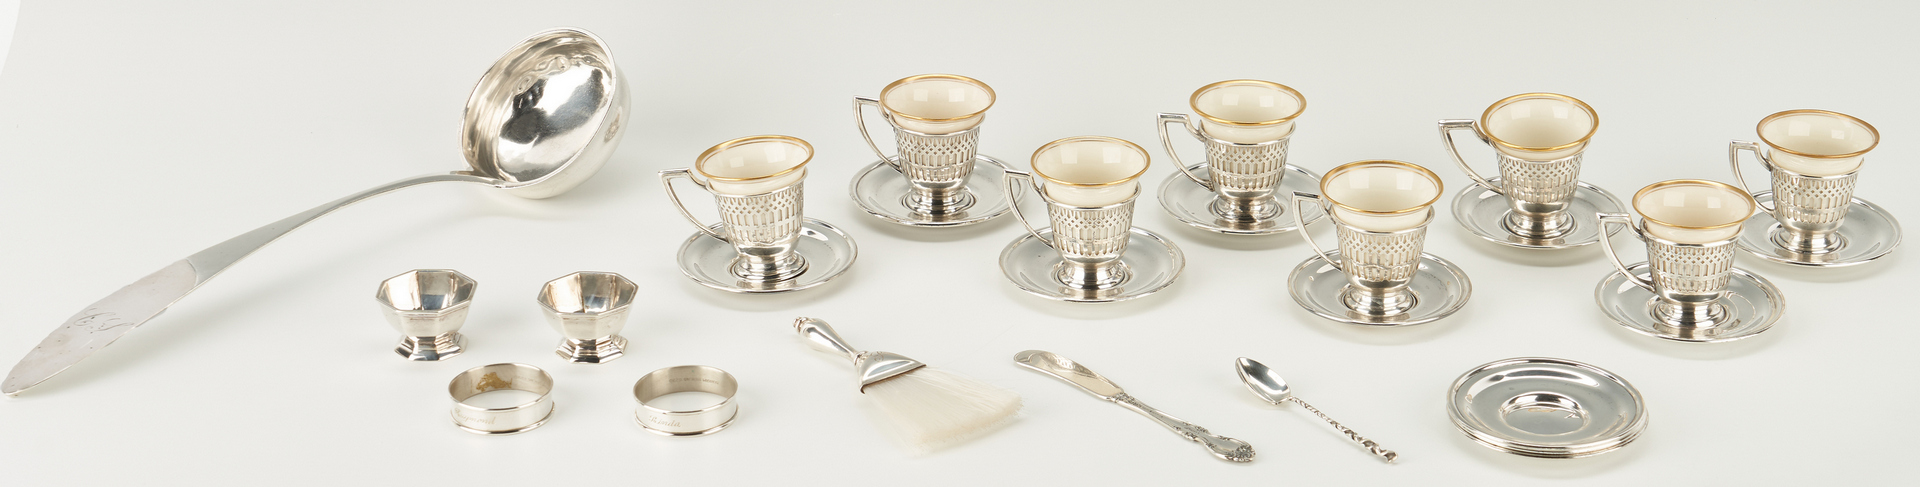 Lot 821: 16 Silver Items incl. Demitasse Cups w/ Sterling Holders, Ladle